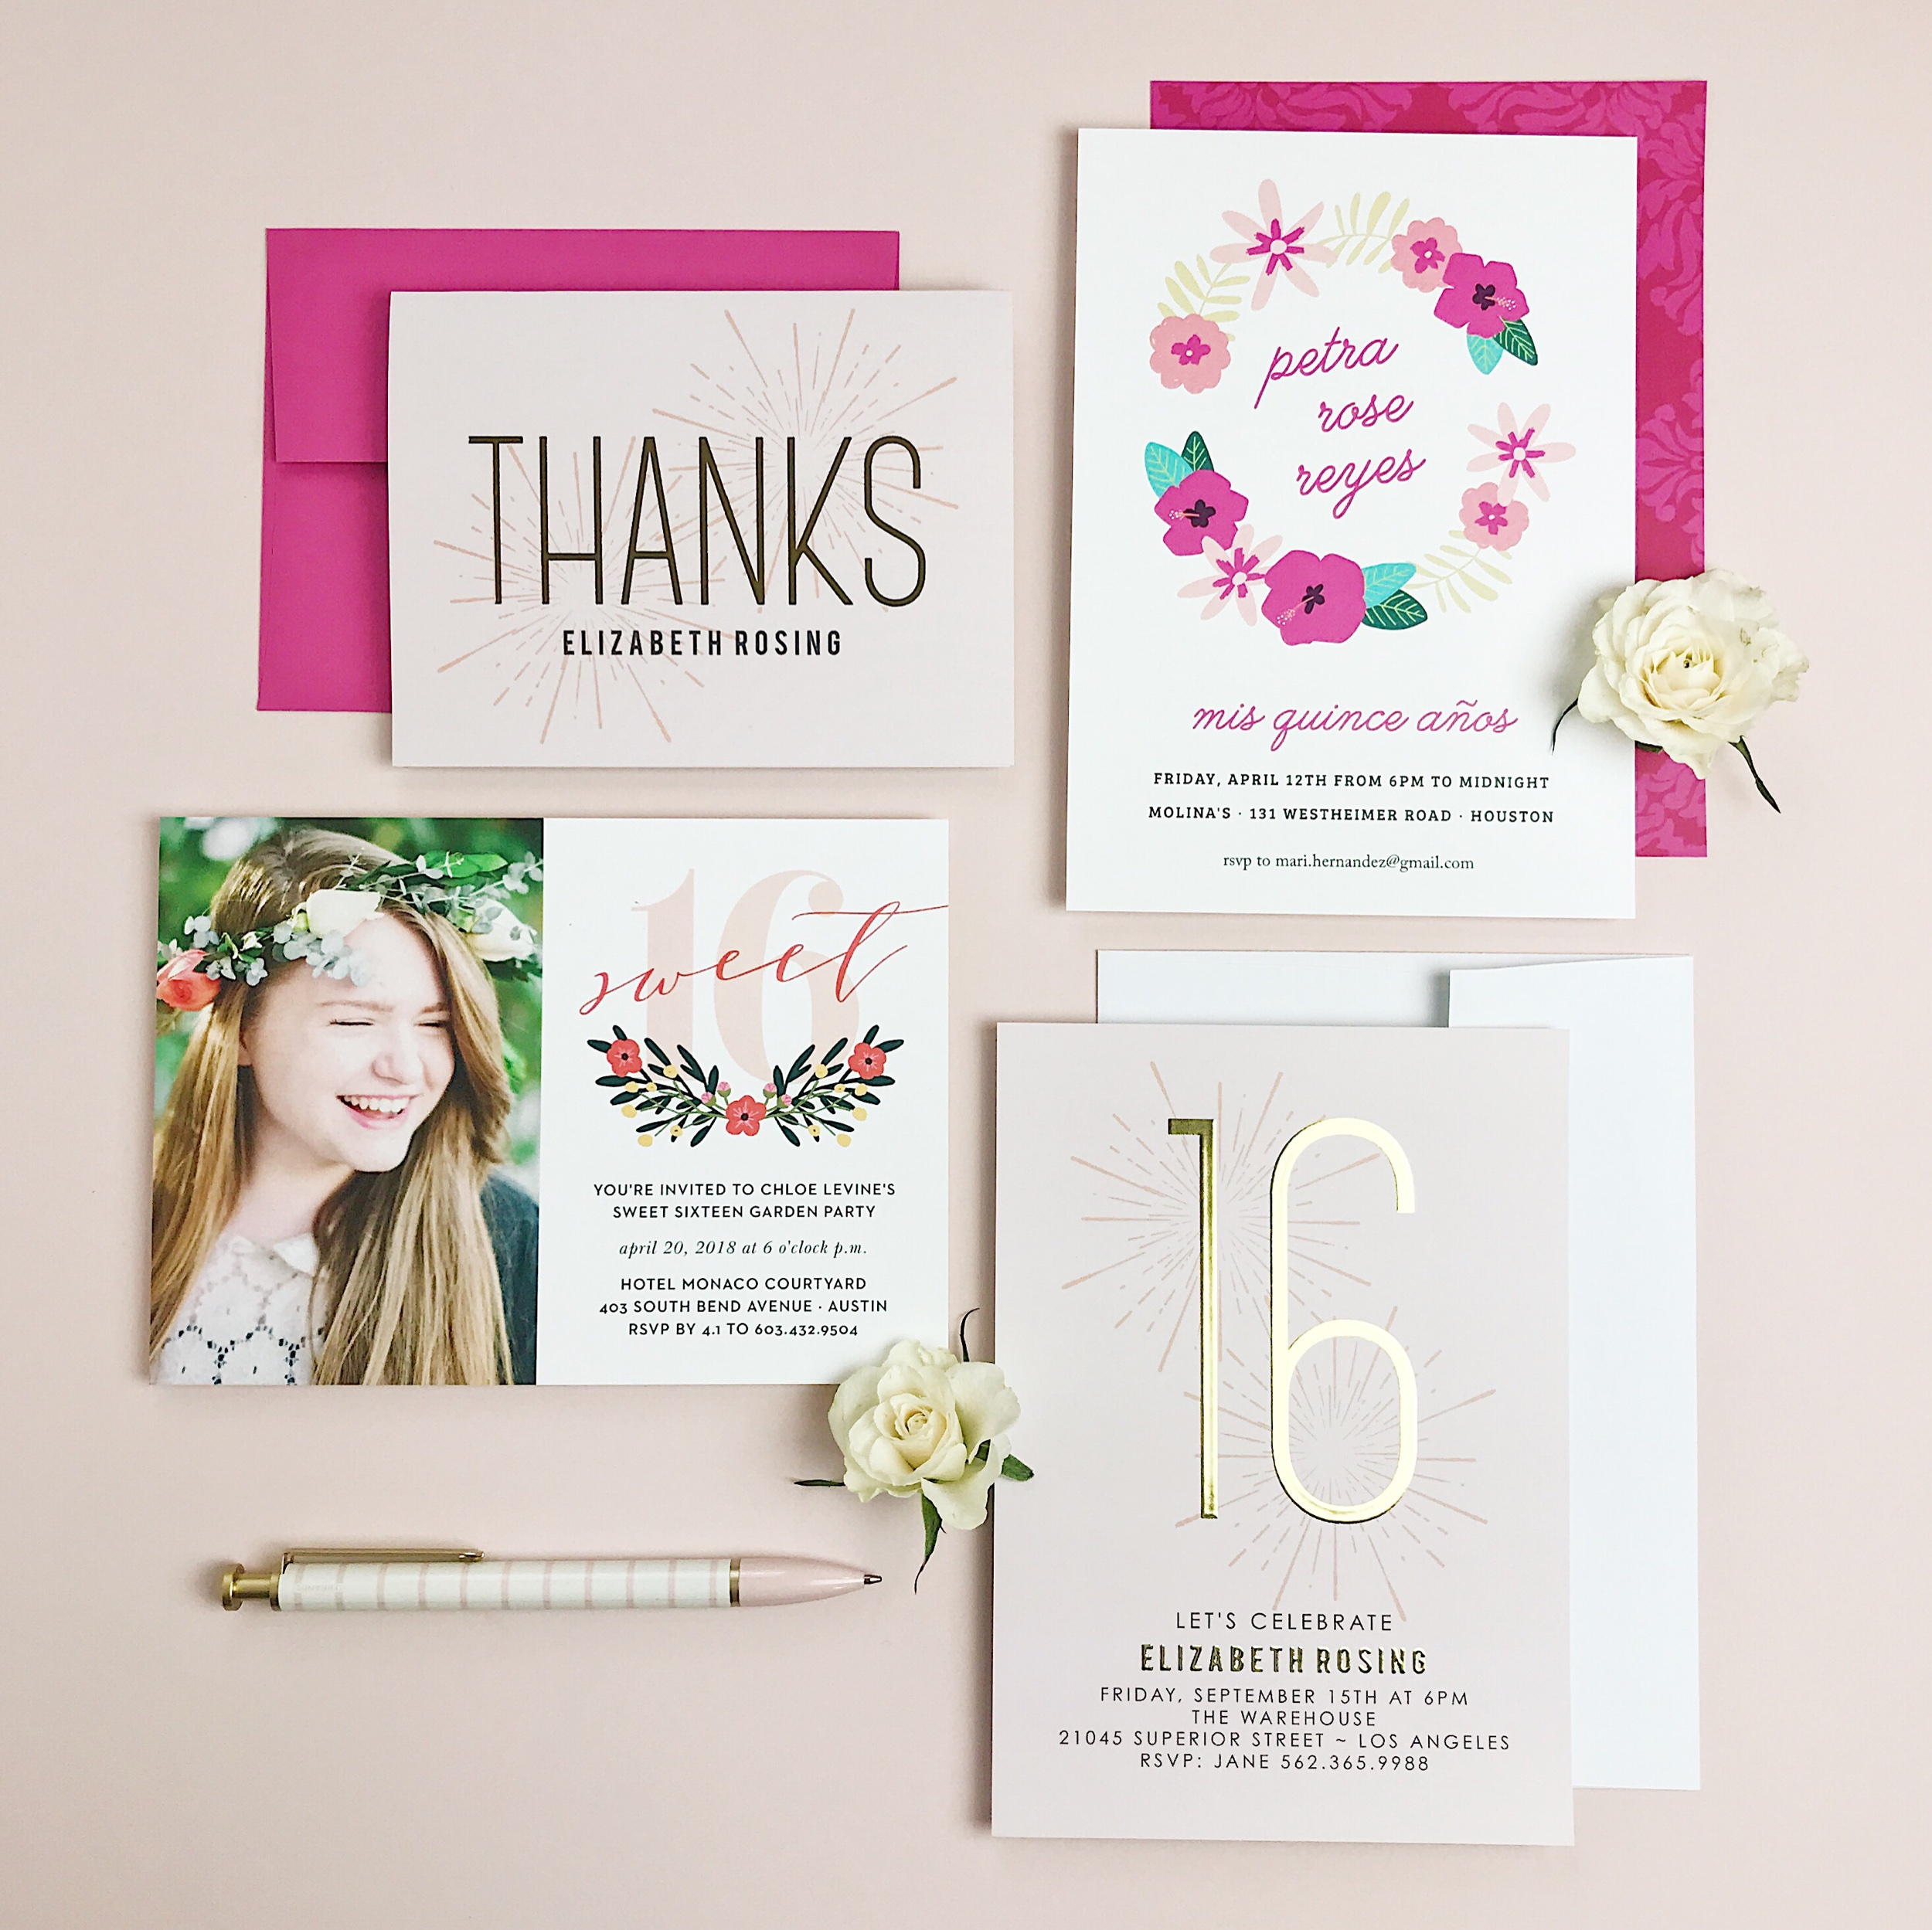 """The """" Sweet Sparkler Foil Sweet Sixteen Thank You Cards """", """" Painted Flowers Quinceanera Party Invitations """" """" Festive Floral Sweet Sixteen Party Invitations """", and """" Sweet Sparkler Foil Sweet Sixteen Party Invitations """""""